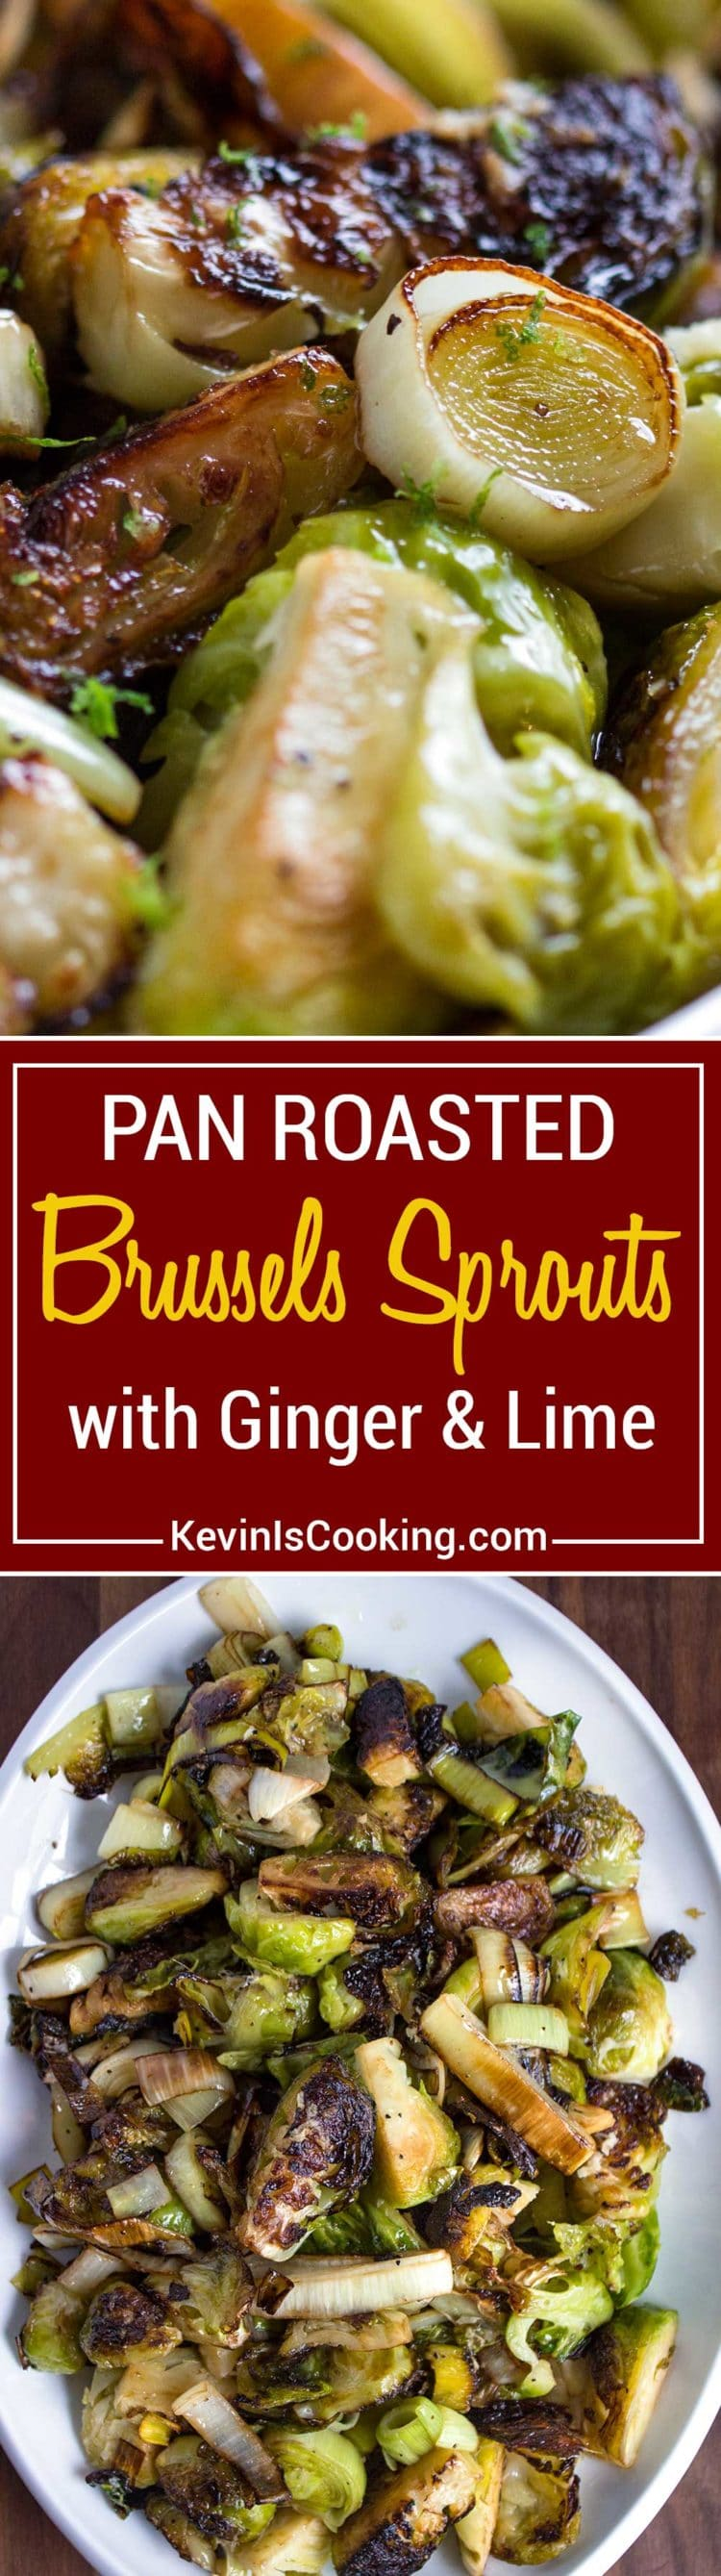 These Pan Roasted Brussels Sprouts are served crispy, browned and get a flavor boost from sliced leeks cooked with butter, fresh ginger and lime zest. There's never any leftover!